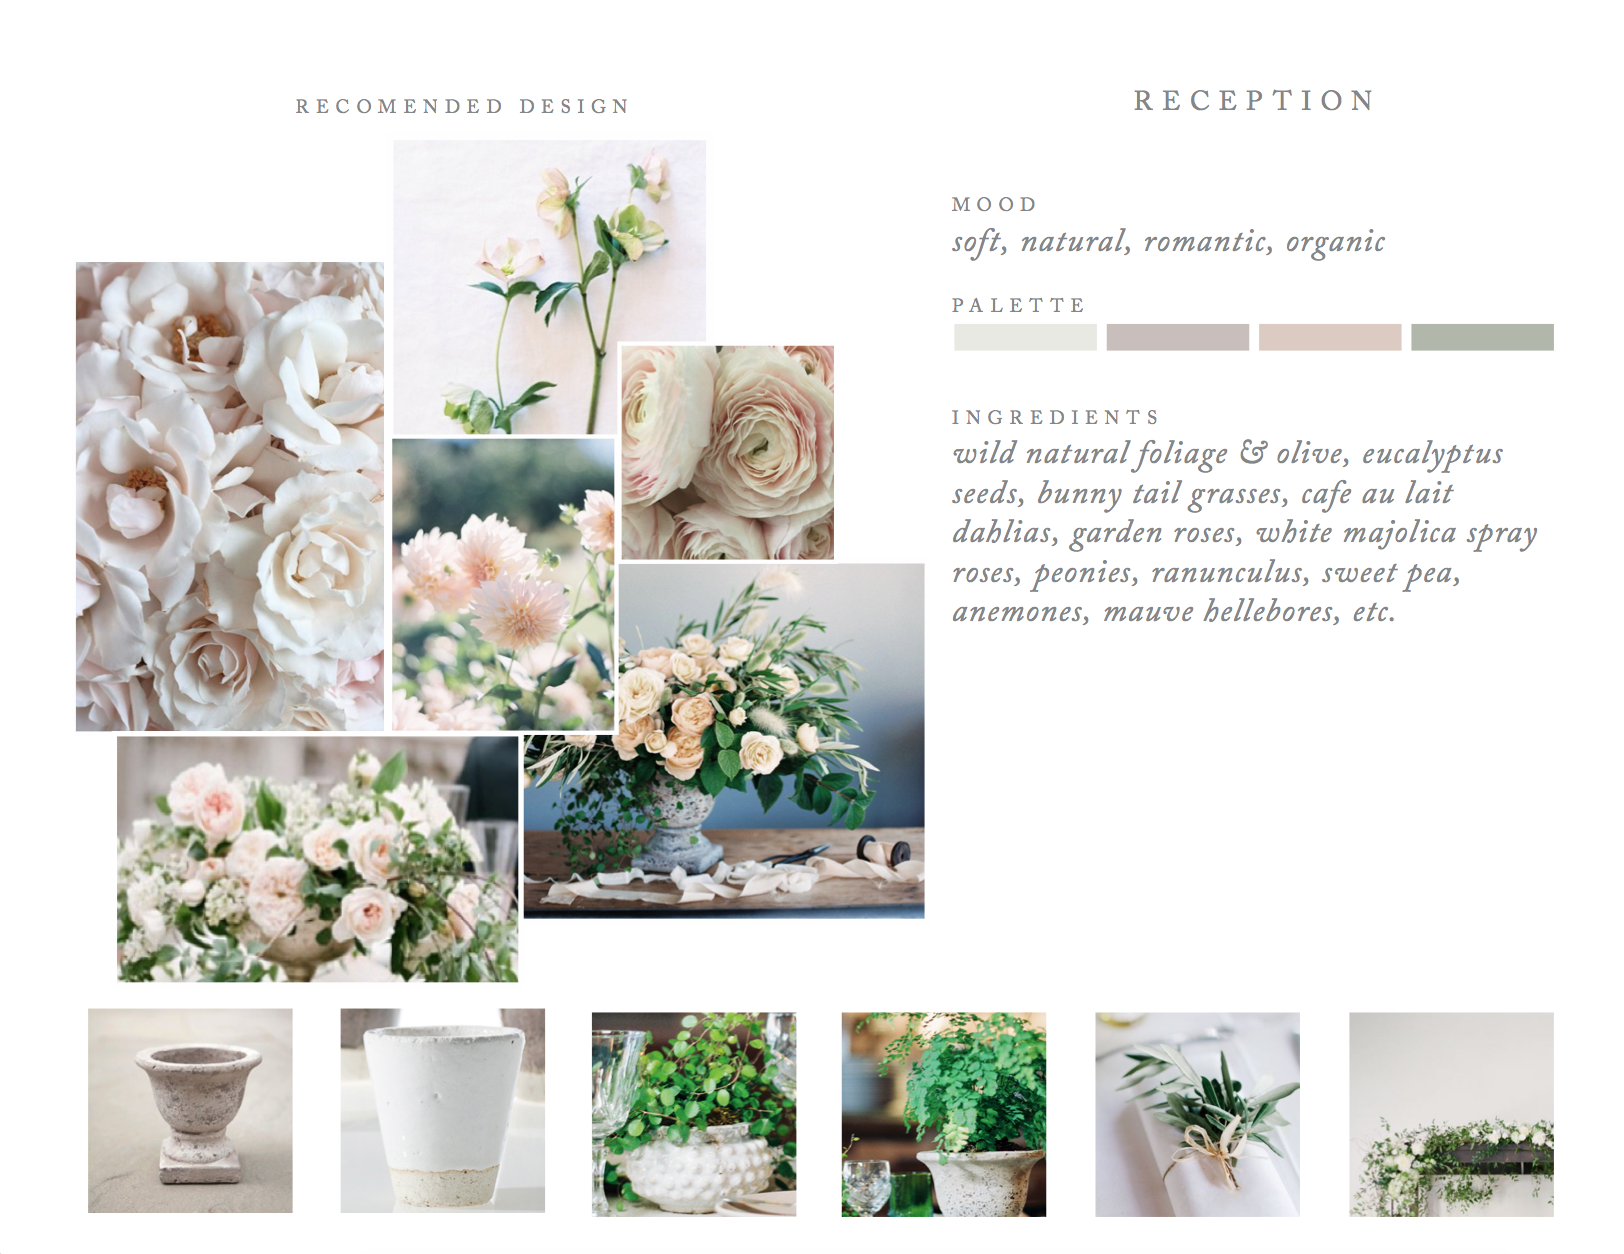 The design for this pale and neutral luxury wedding at Sunstone was inspired by the iconic coloring of the villa walls itself. Above is the vision board we presented to our clients as a seedling of what their beautiful day could look like. We carried out this design using wild summer berries on the vine, a variety of locally harvested old-world garden roses, and we had cafe au lait dahlias cut the day before the event for flawless perfection.